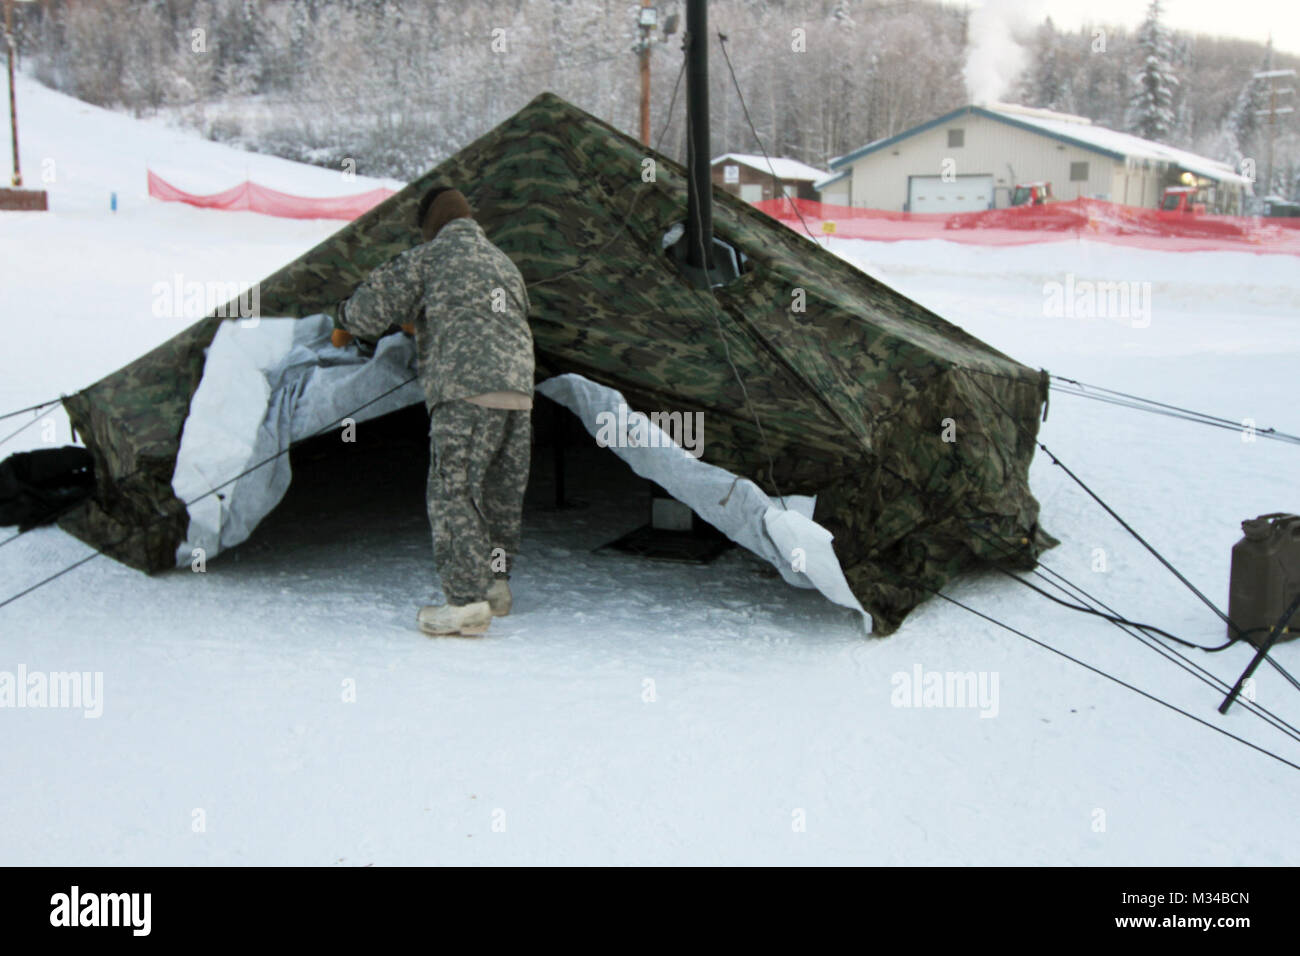 A Soldier from the Northern Warfare Training Center sets up an arctic tent as part of & A Soldier from the Northern Warfare Training Center sets up an ...